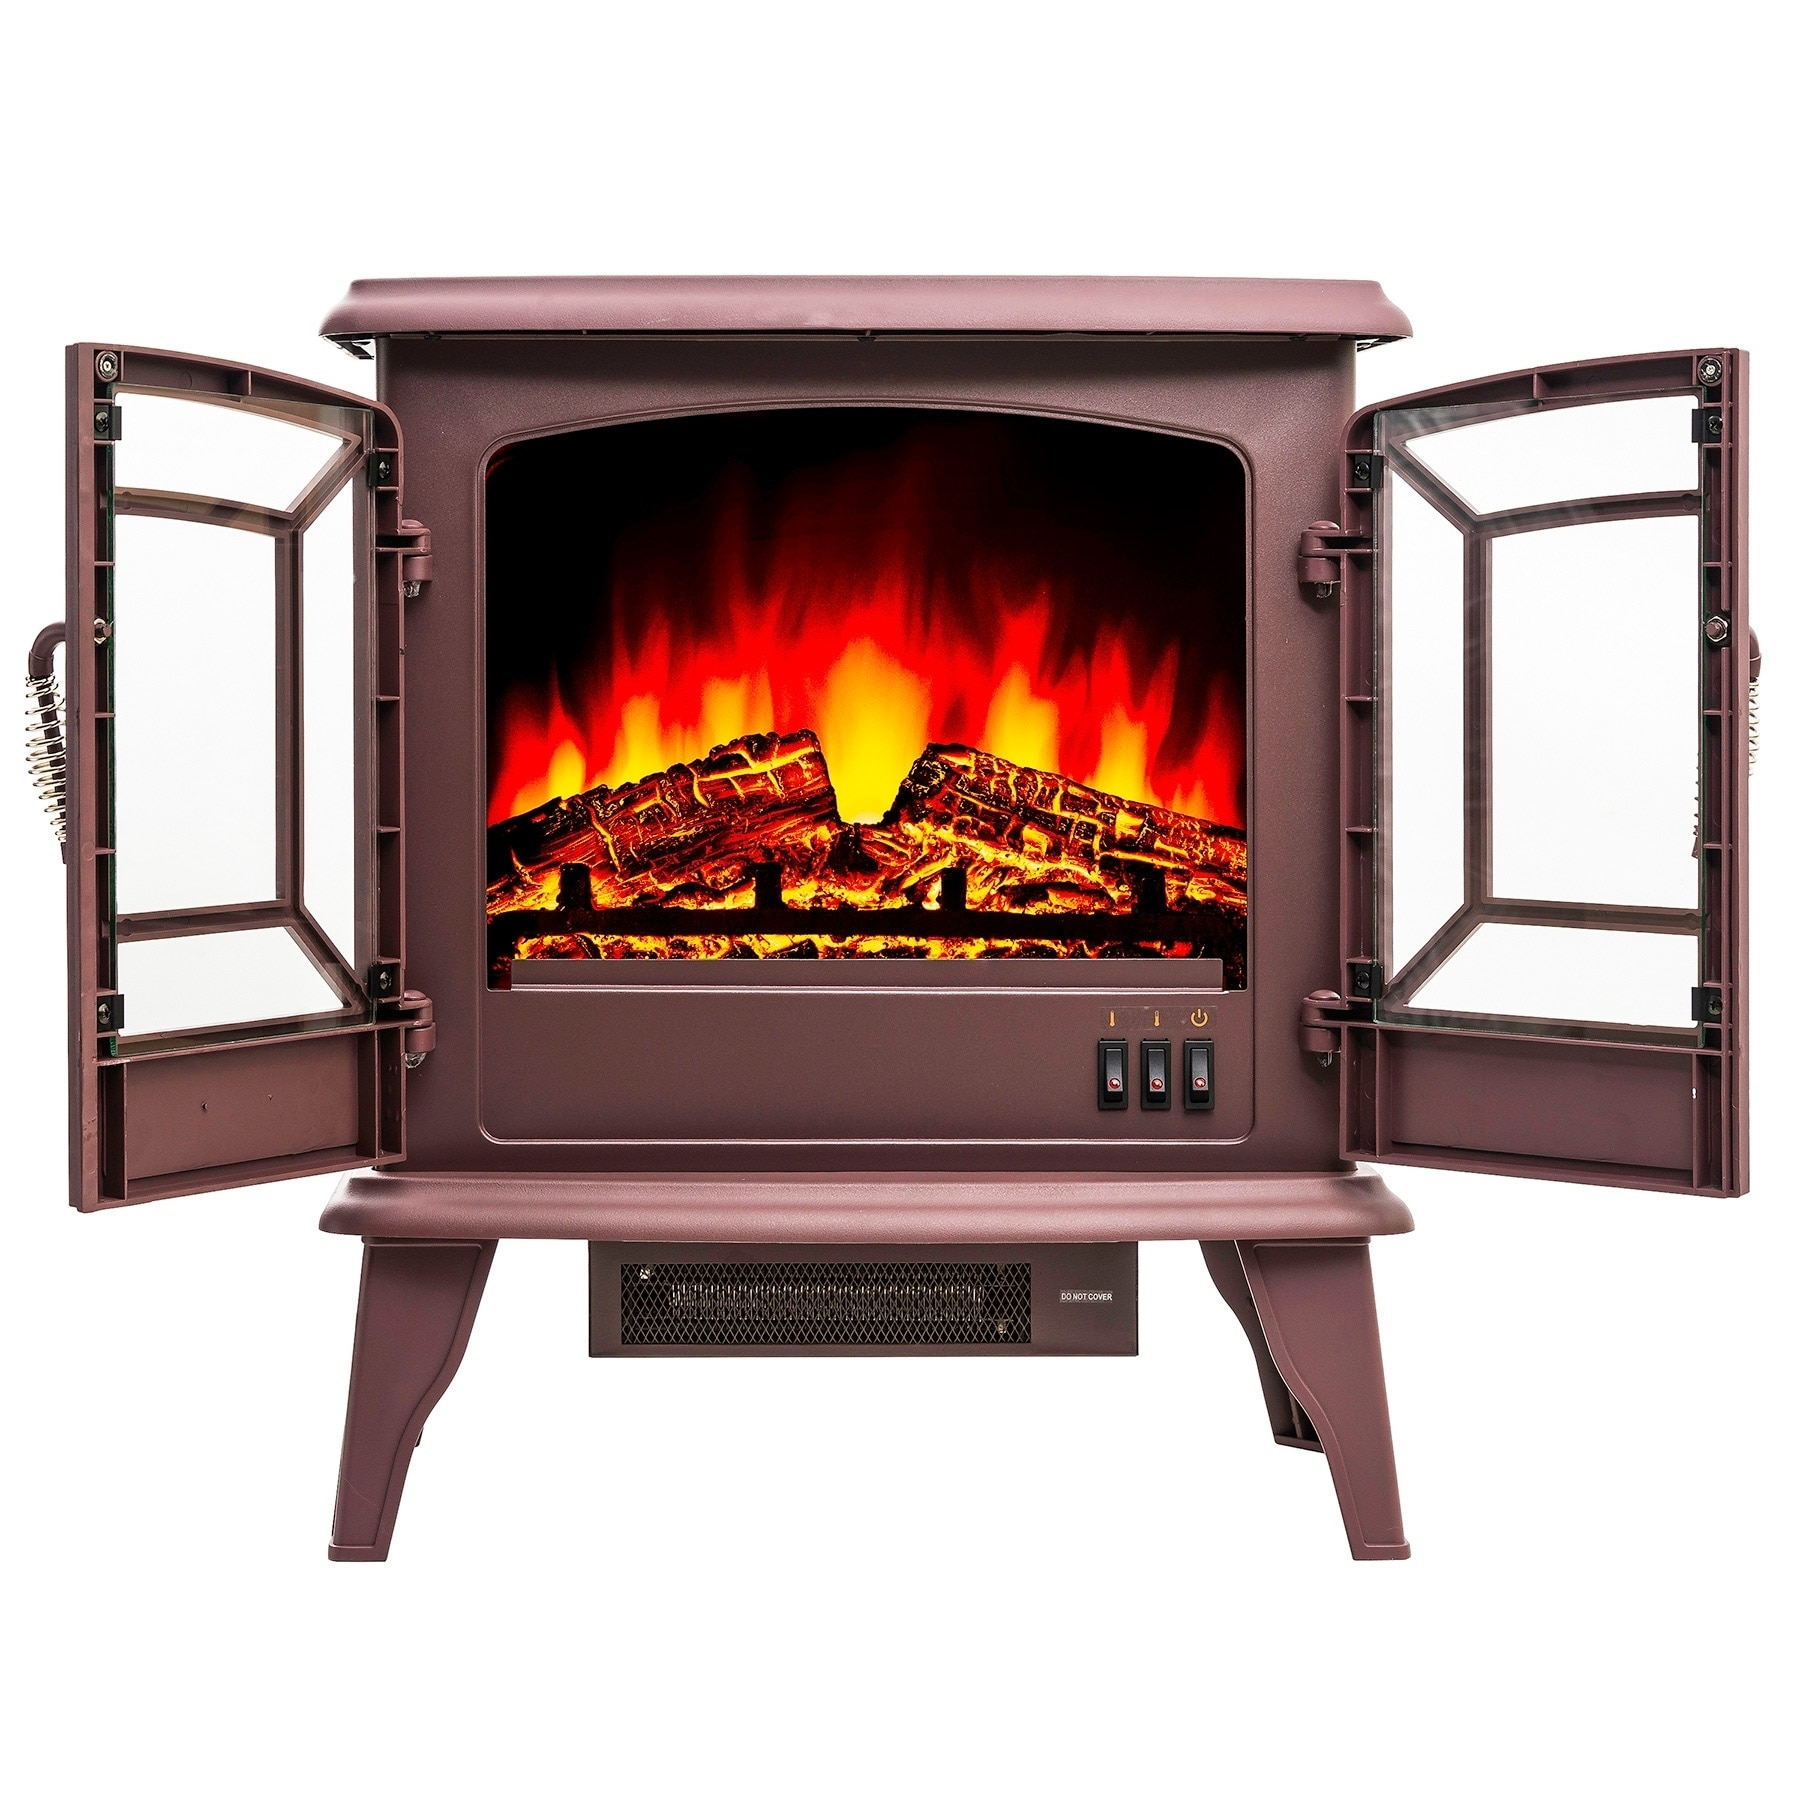 Golden Vantage Fp0077 20 Electric Fireplace Portable Freestanding Brown Firebox Flame W Logs Heater On Free Shipping Today